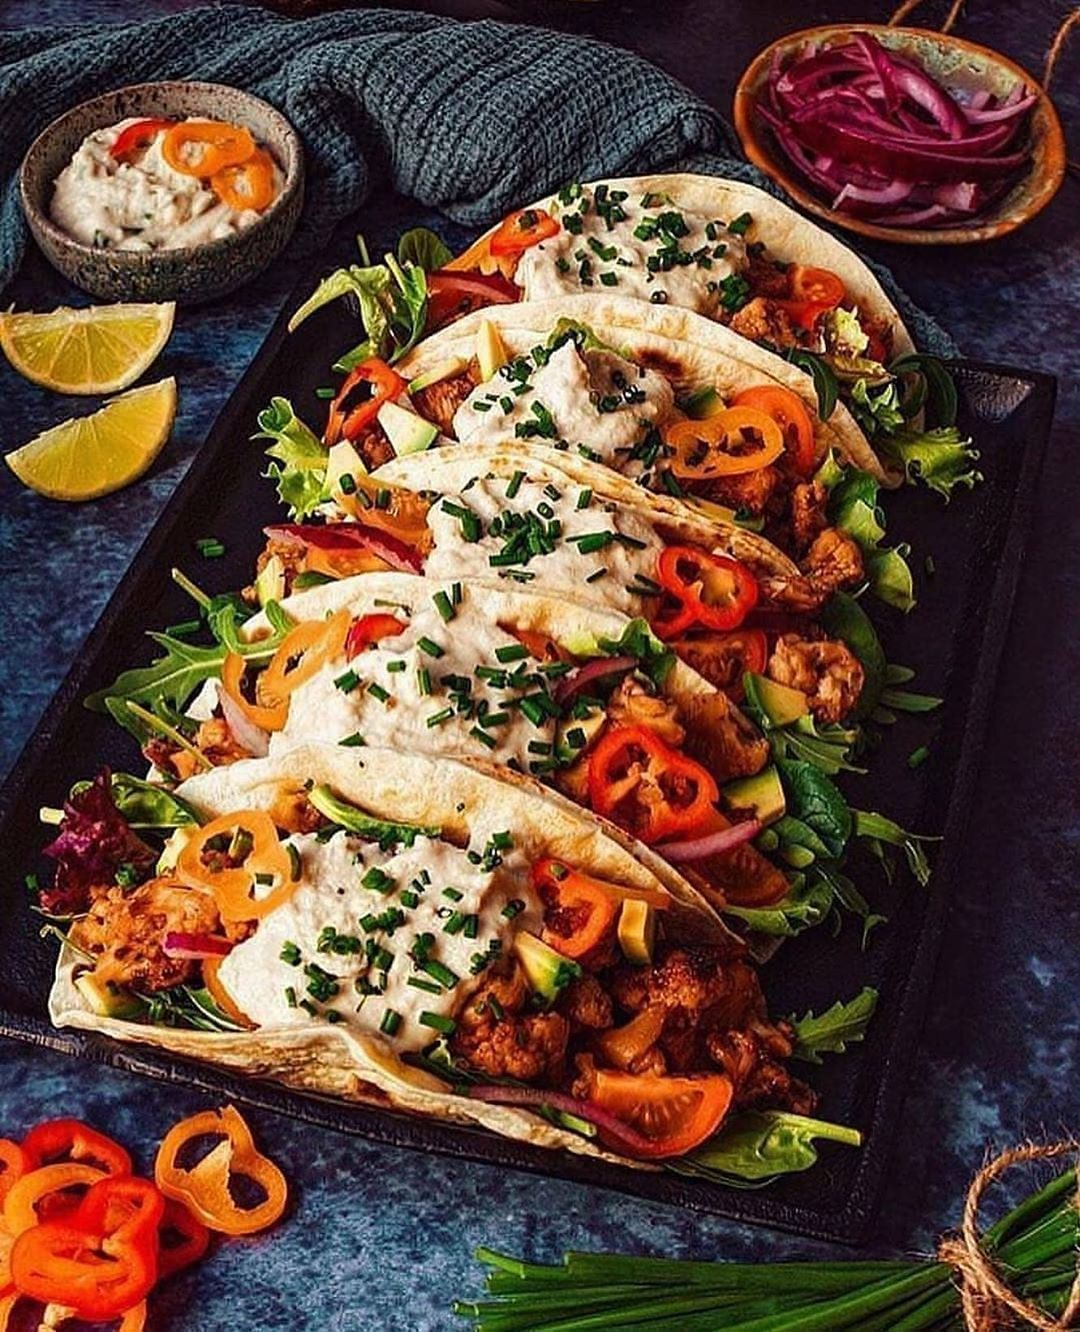 bbq cauliflower tacos looks so delicious what do you thin display image  0205af39